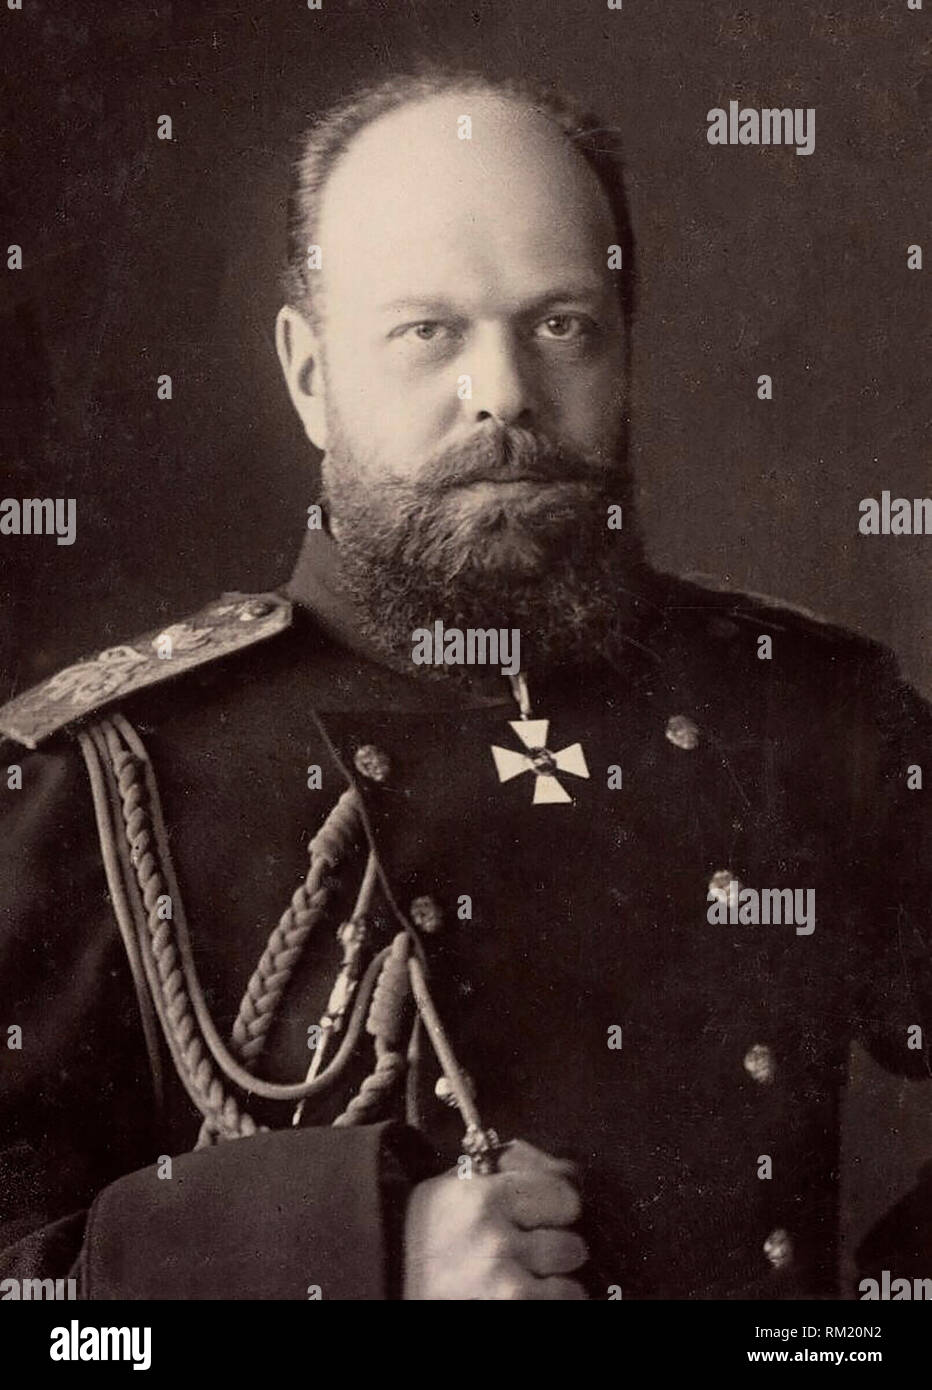 Bust-length photograph of Alexander III, Emperor of Russia. His right arm is raised to his chest and he is wearing military uniform. Alexander III was Emperor of Russia from 1881 until 1894. - Stock Image